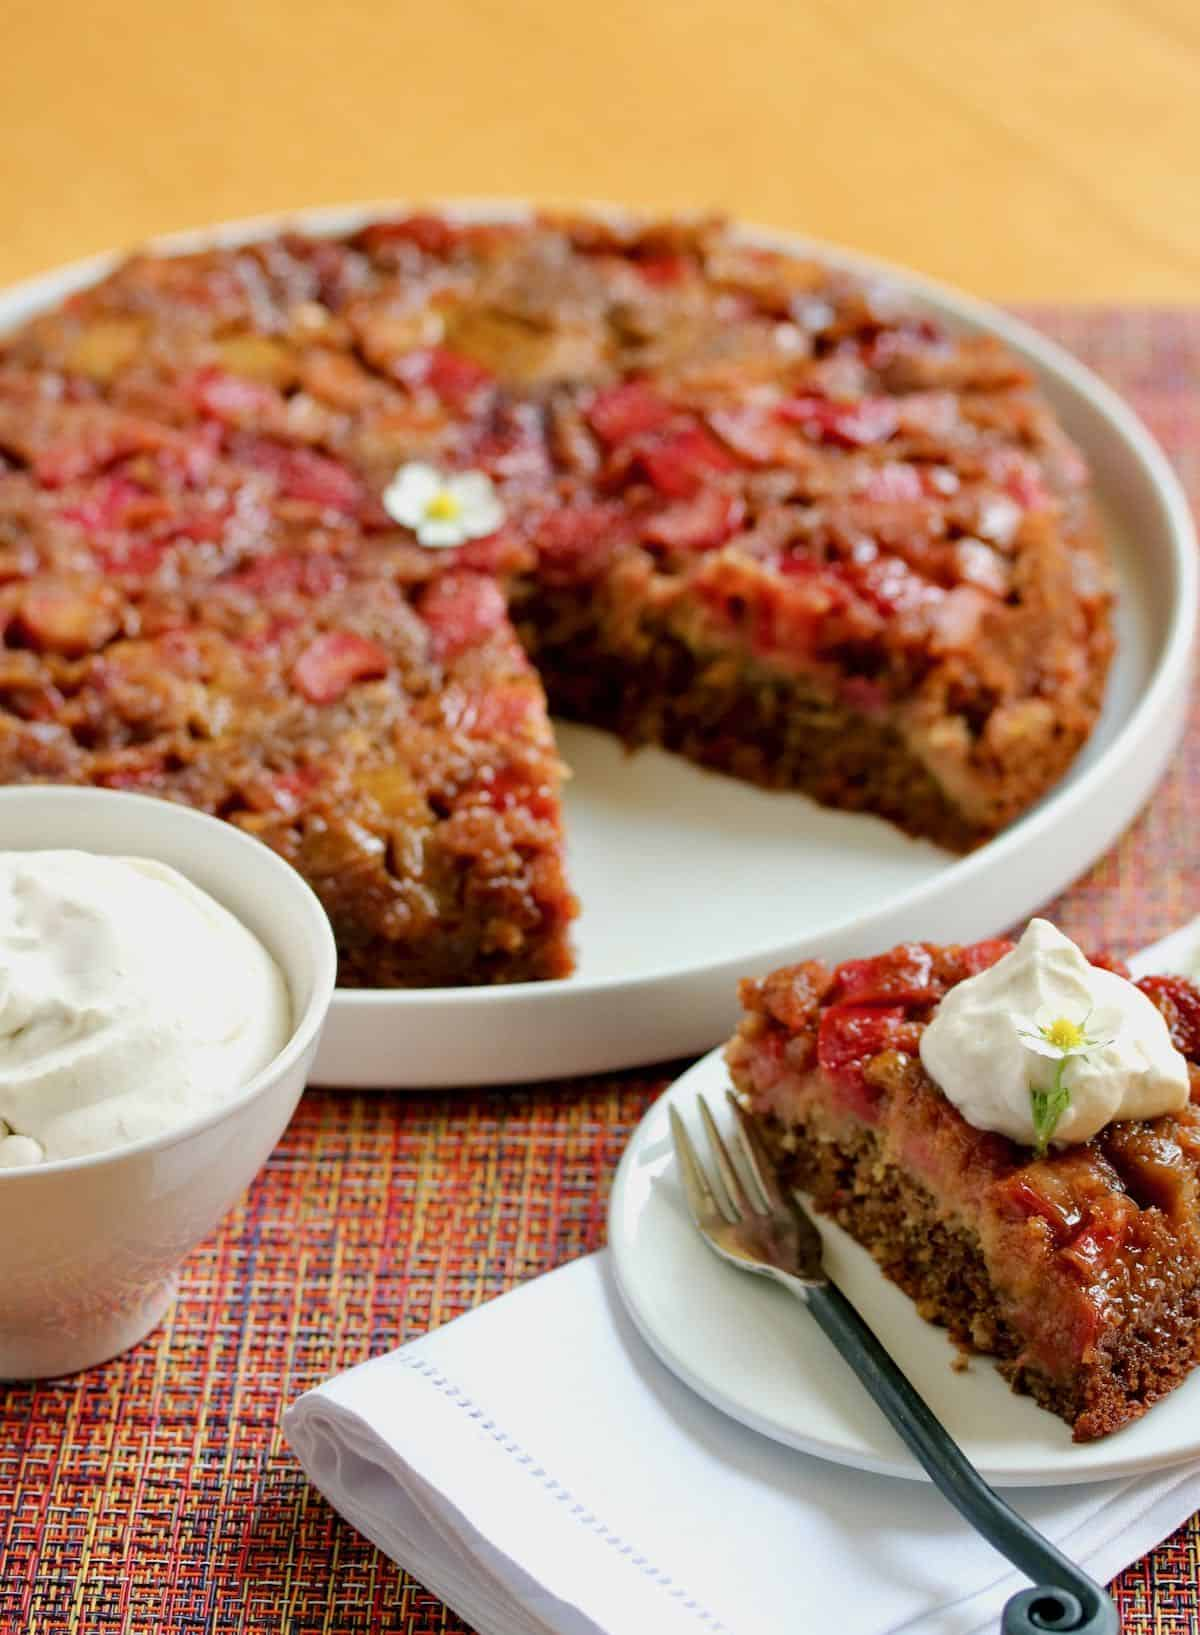 strawberry rhubarb skillet cake sliced with bowl whipped cream. one of my winning recipes